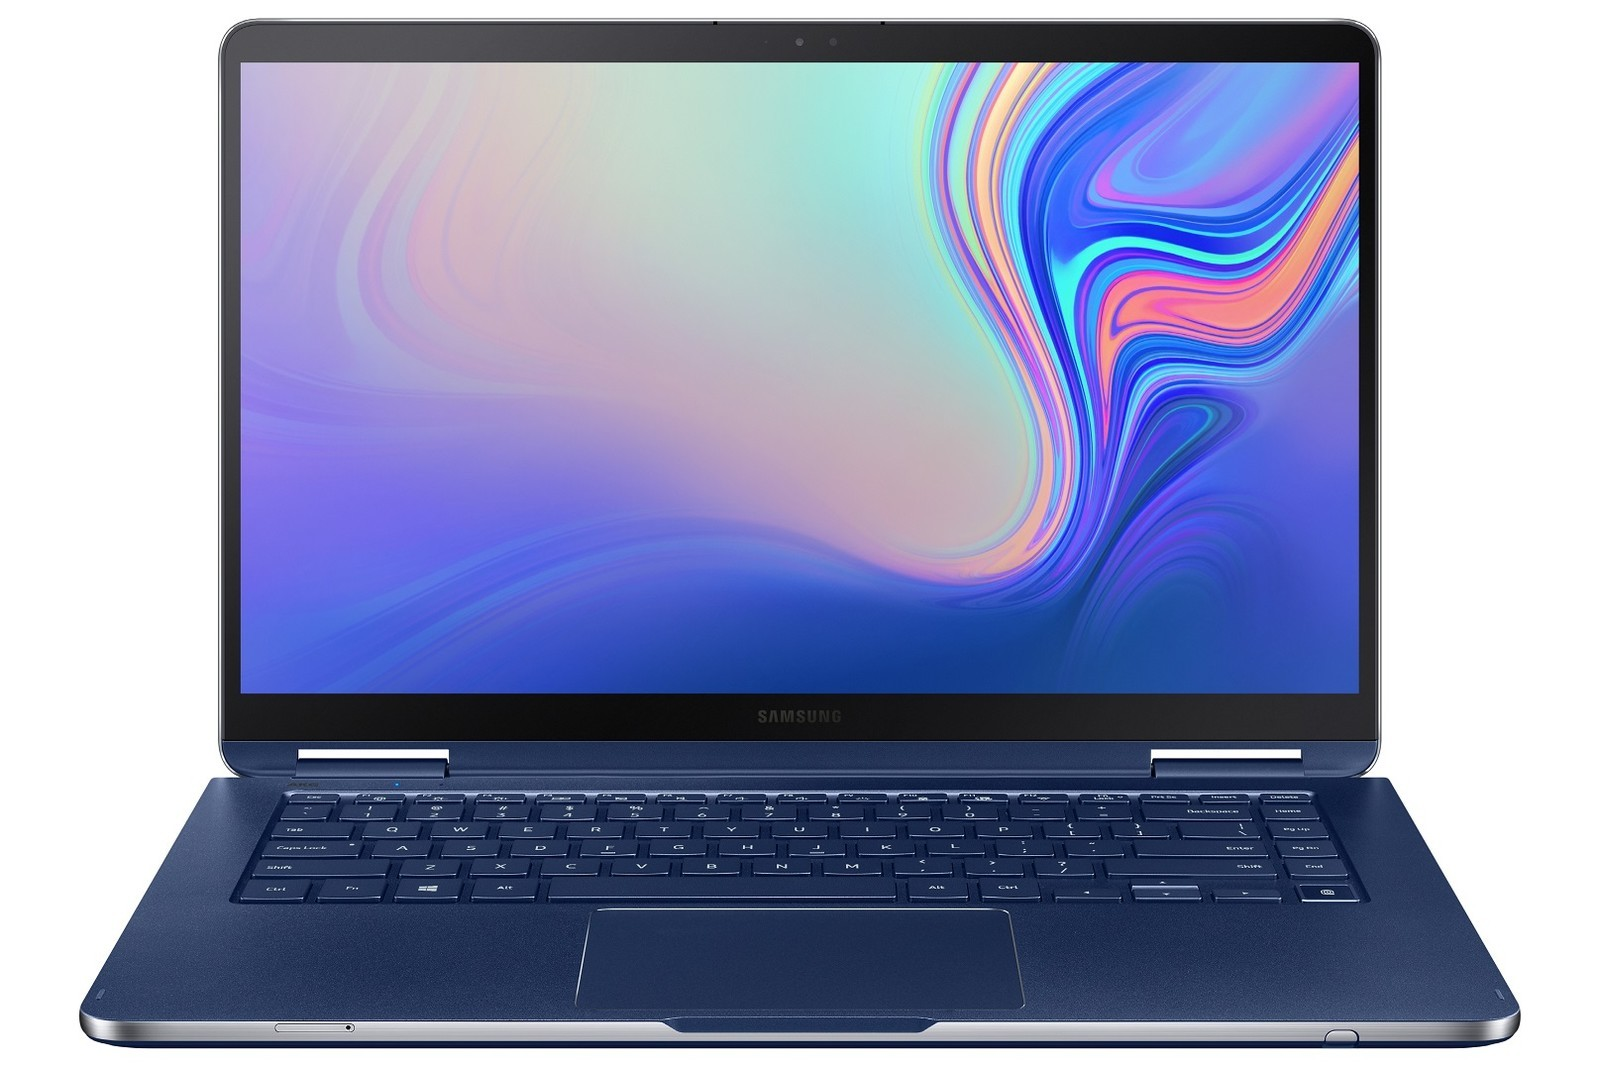 Samsung Notebook Pen 9 2019